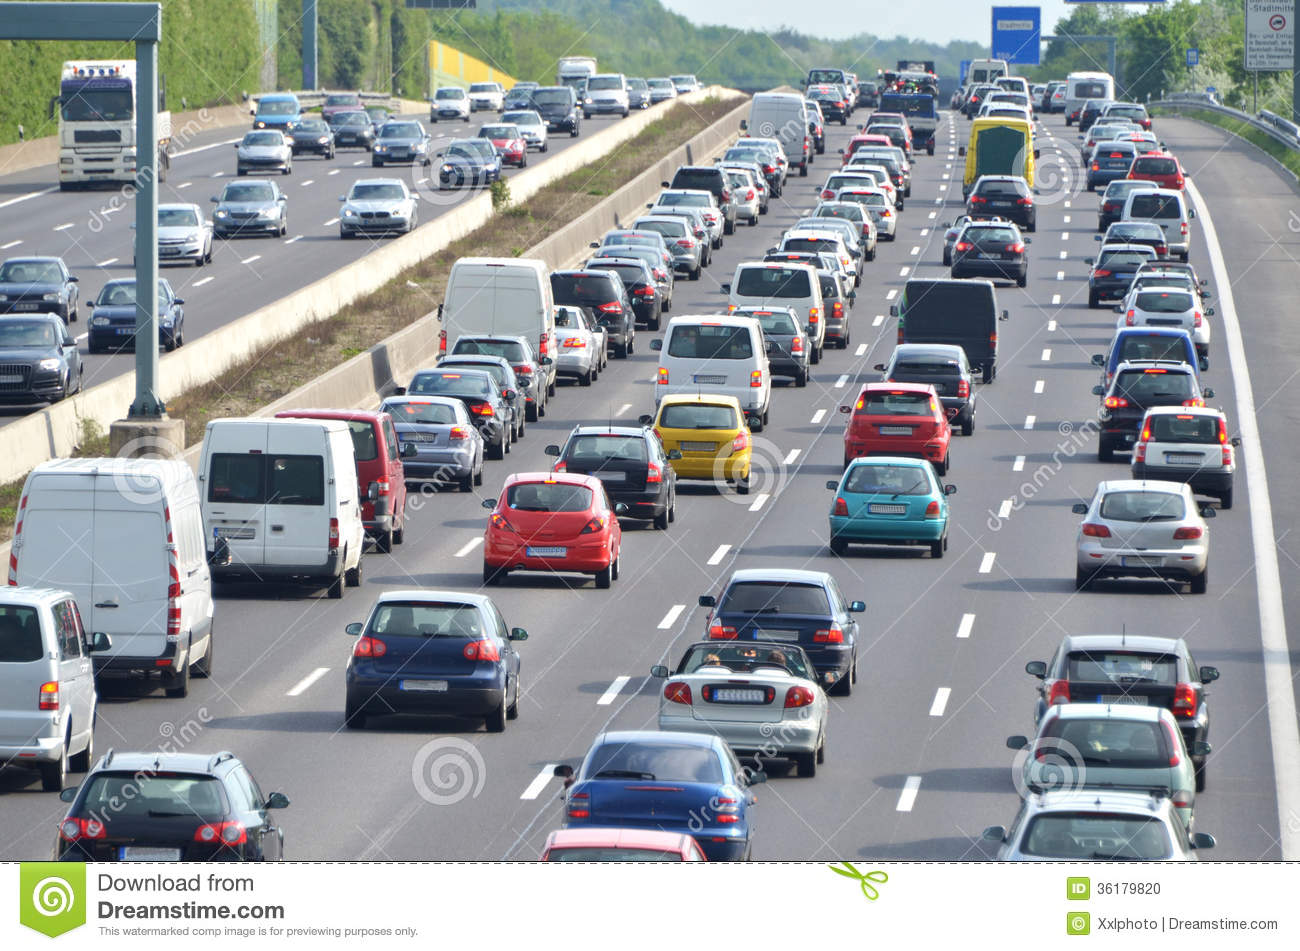 traffic-jam-german-highway-current-discu